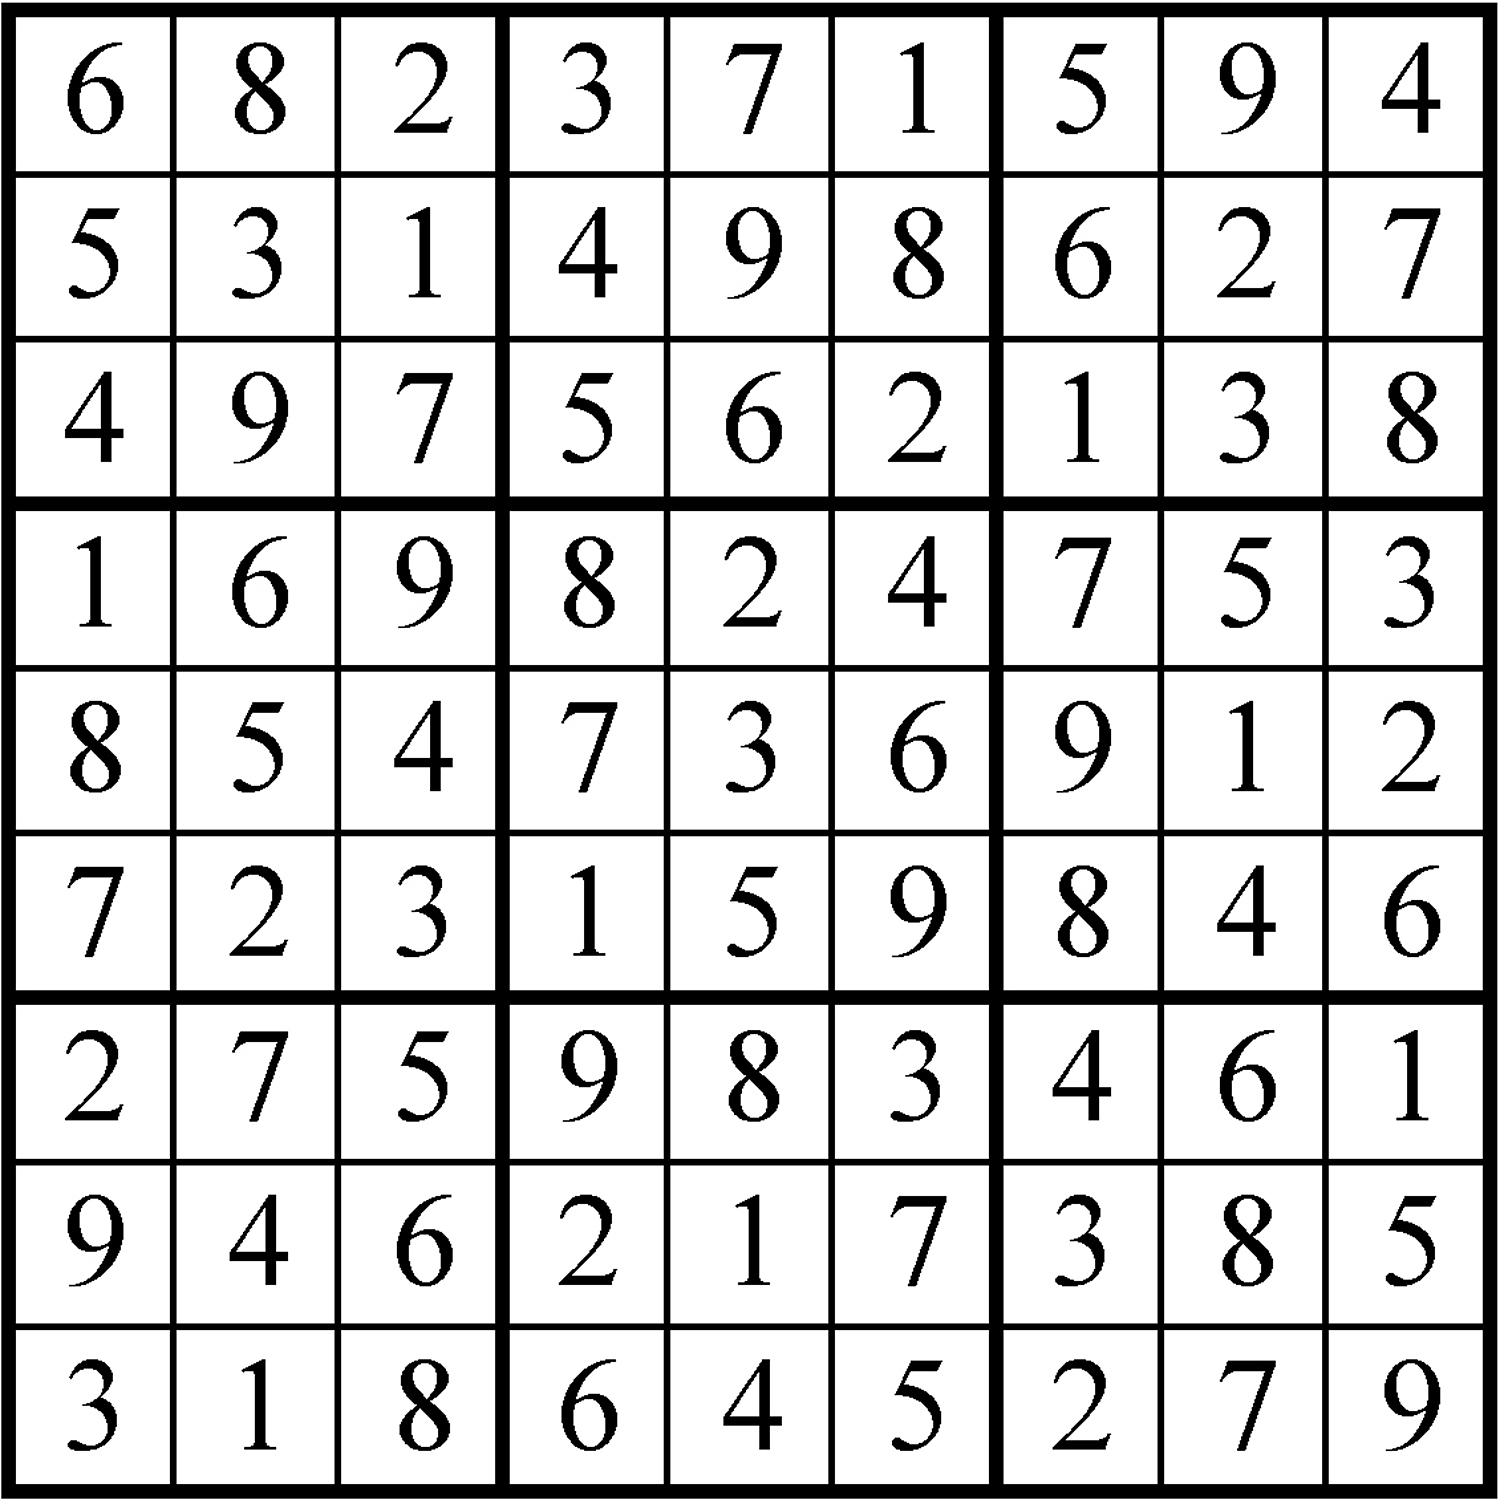 Sudoku Answers For Nov 18